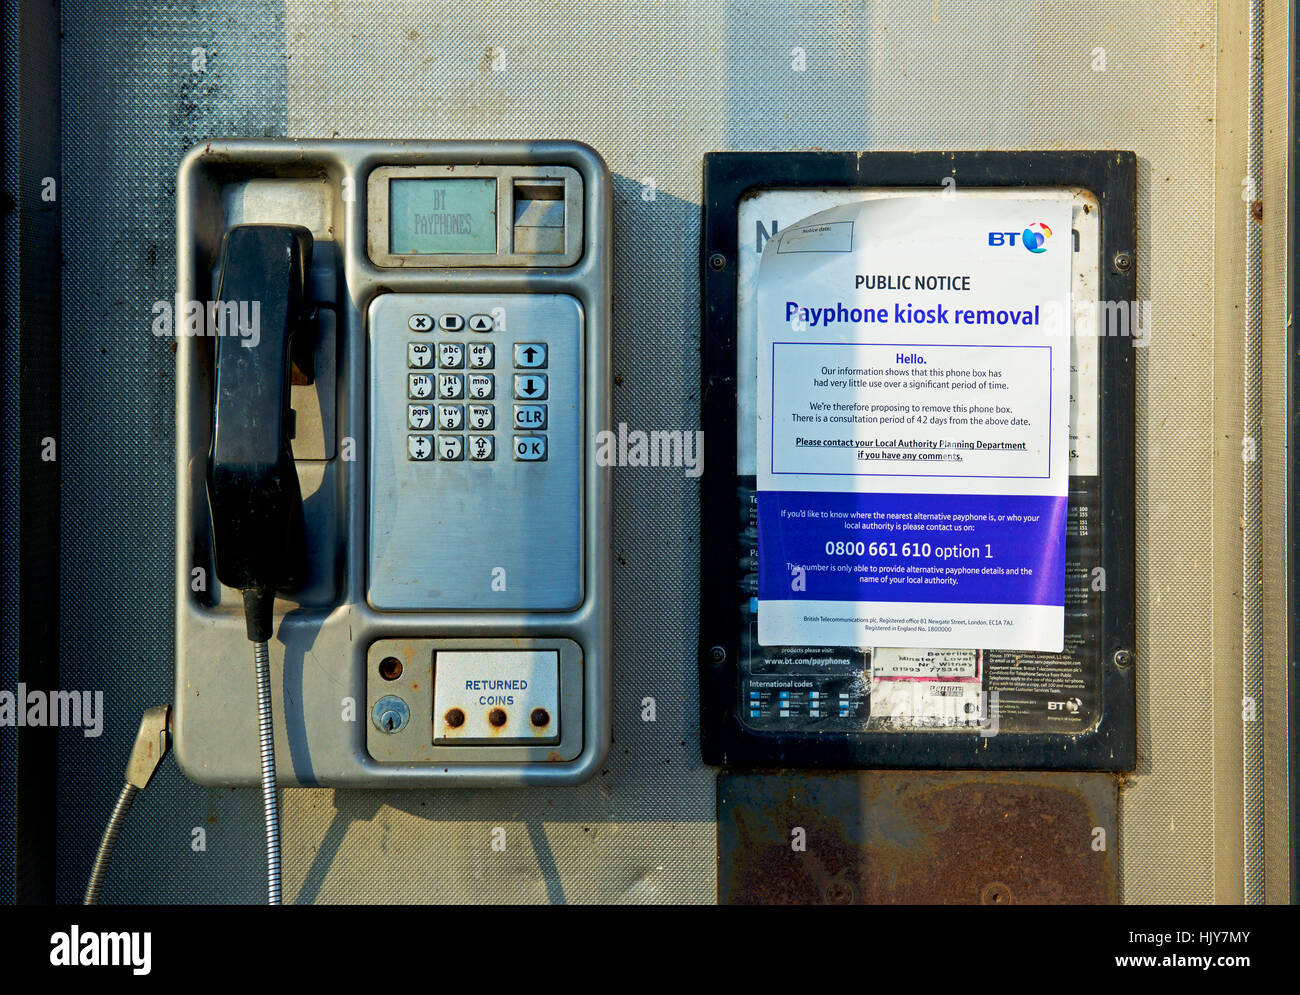 Payphone with notice announcing removal, England UK - Stock Image